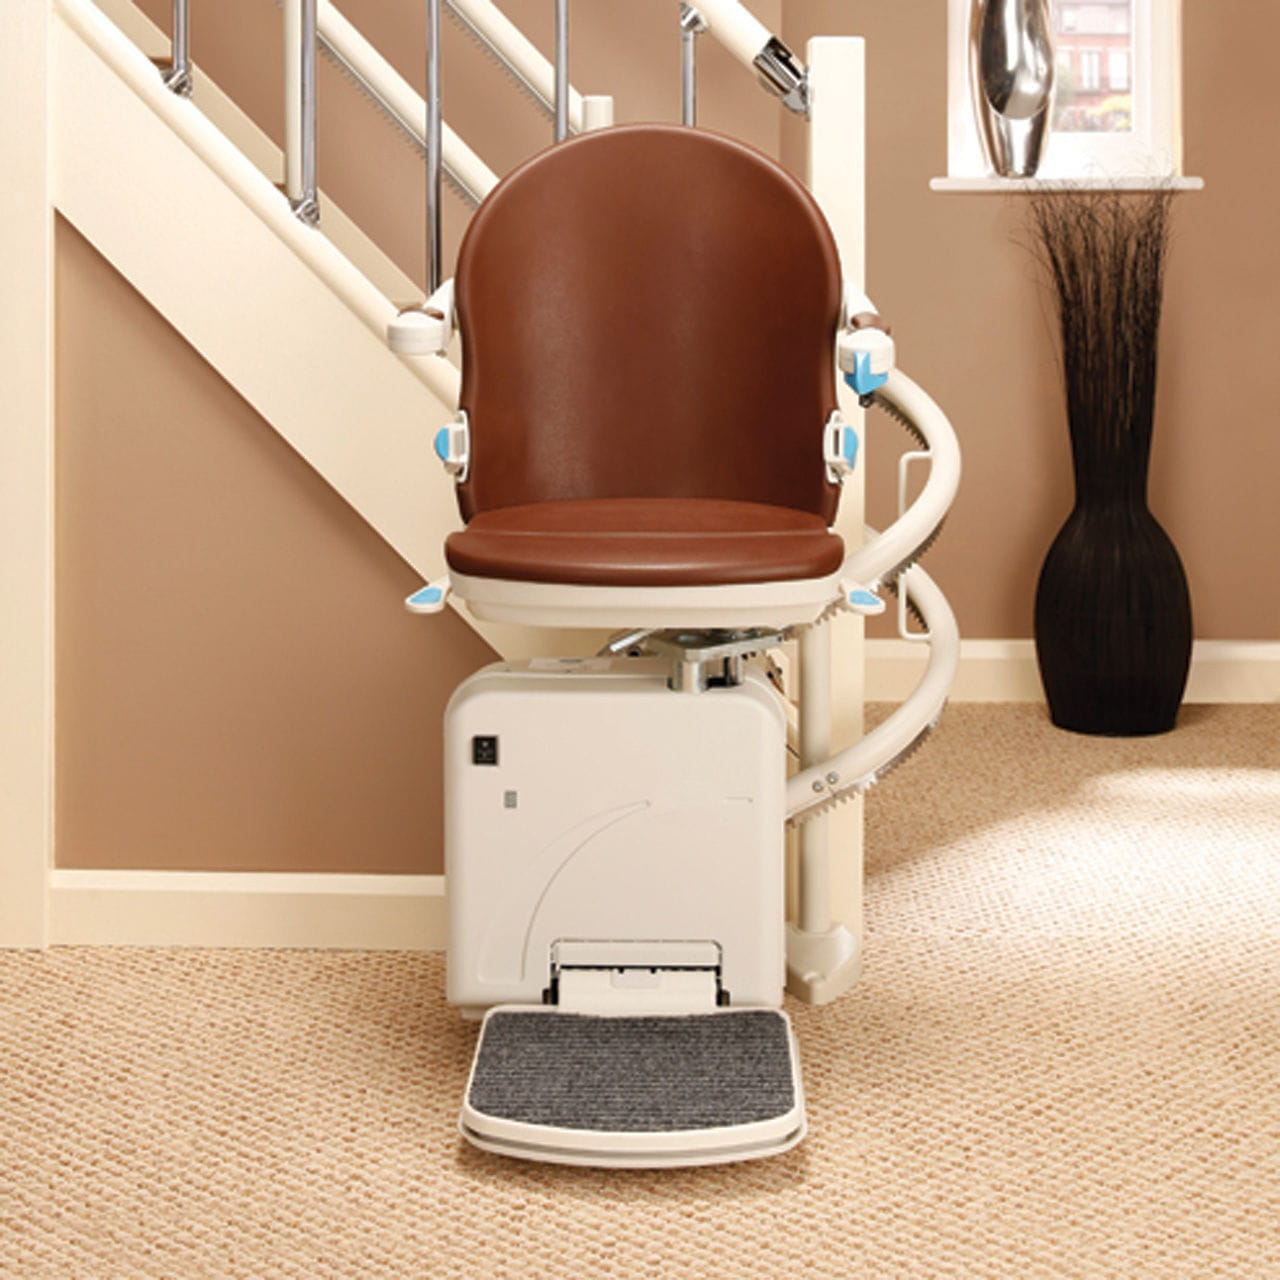 Woman on a stairlift